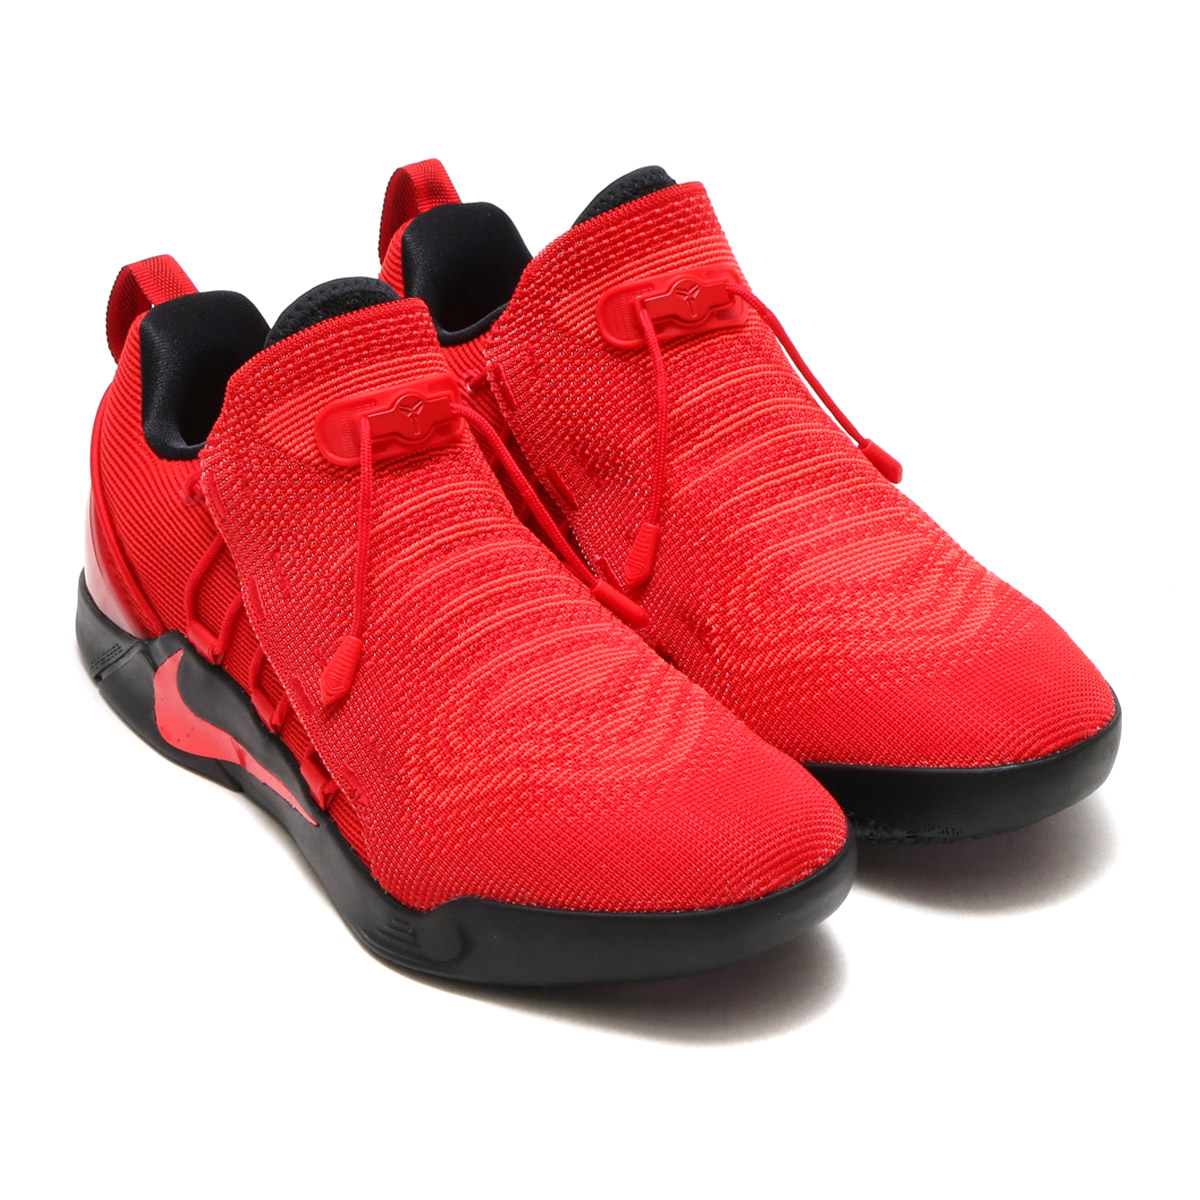 cheap for discount afa61 be278 NIKE KOBE A.D. NXT (Nike Corby A.D. NXT) UNIVERSITY RED BRIGHT CRIMSON 17FA  ...